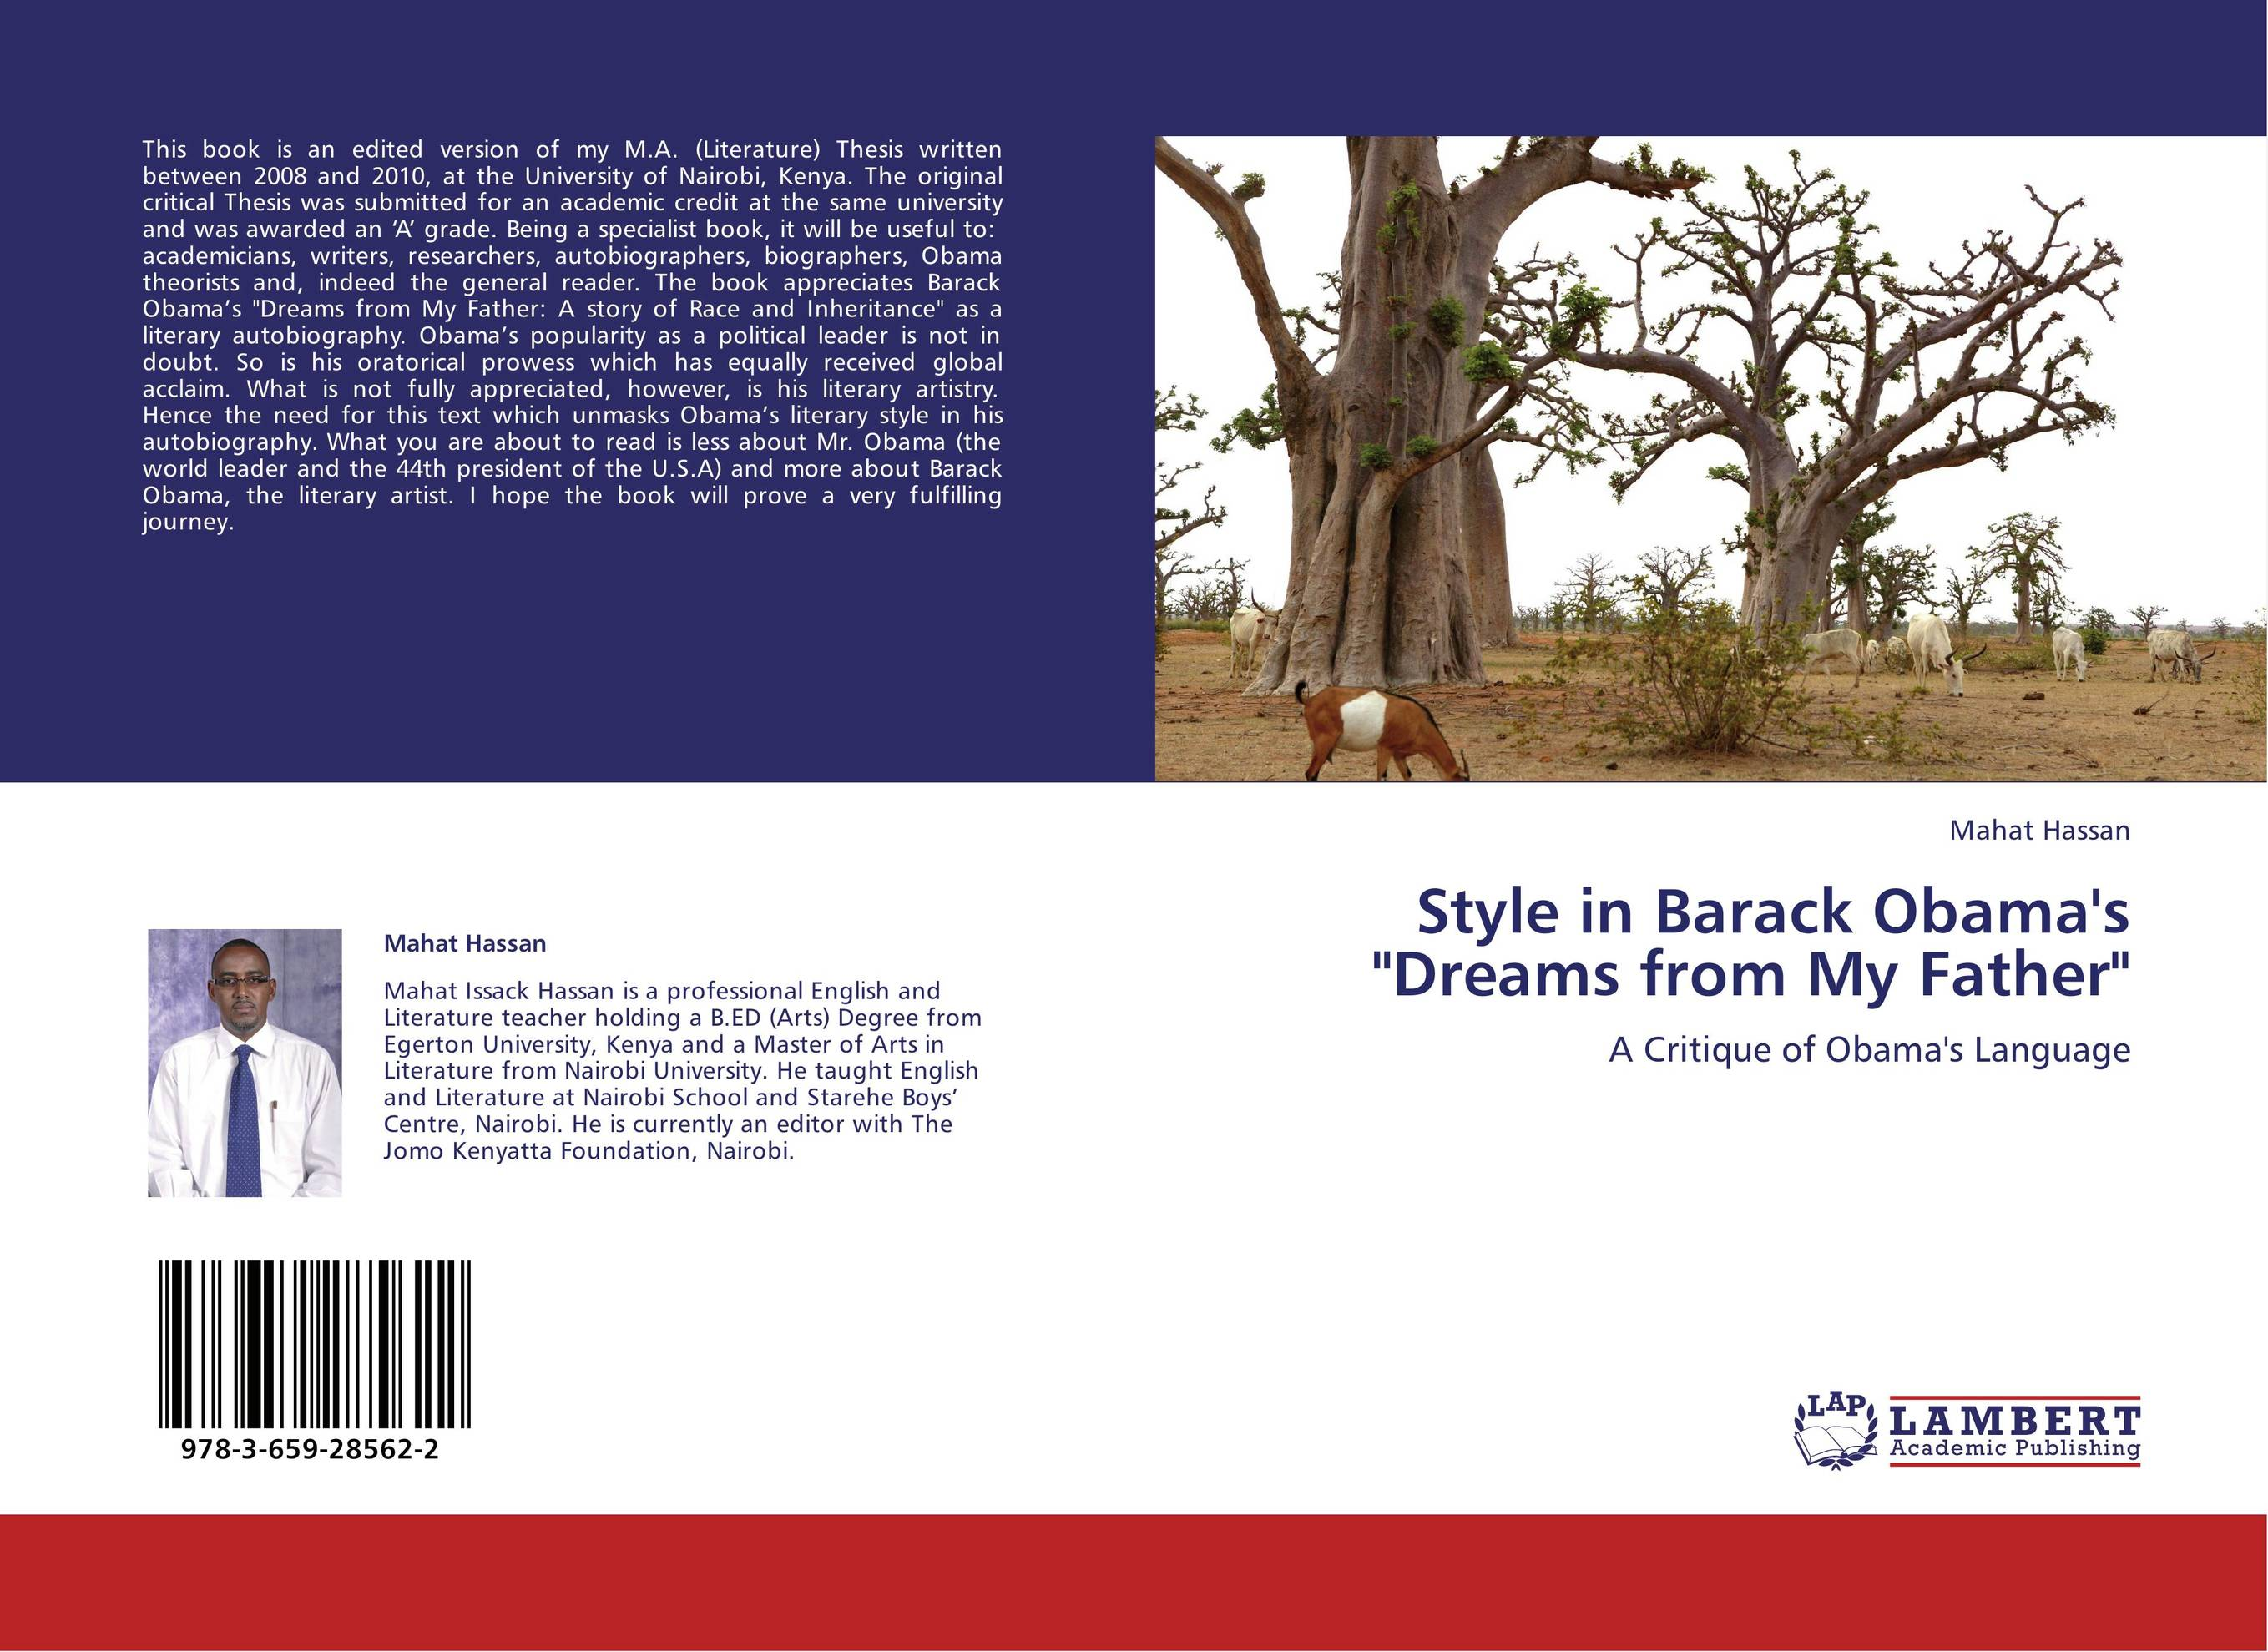 essays on barack obama dreams from my father Ms hartman read the book, dreams from my father, but chose not to review it mr obama's life story struck her as too exotic for her readers — the kenyan father, the white mother, the.